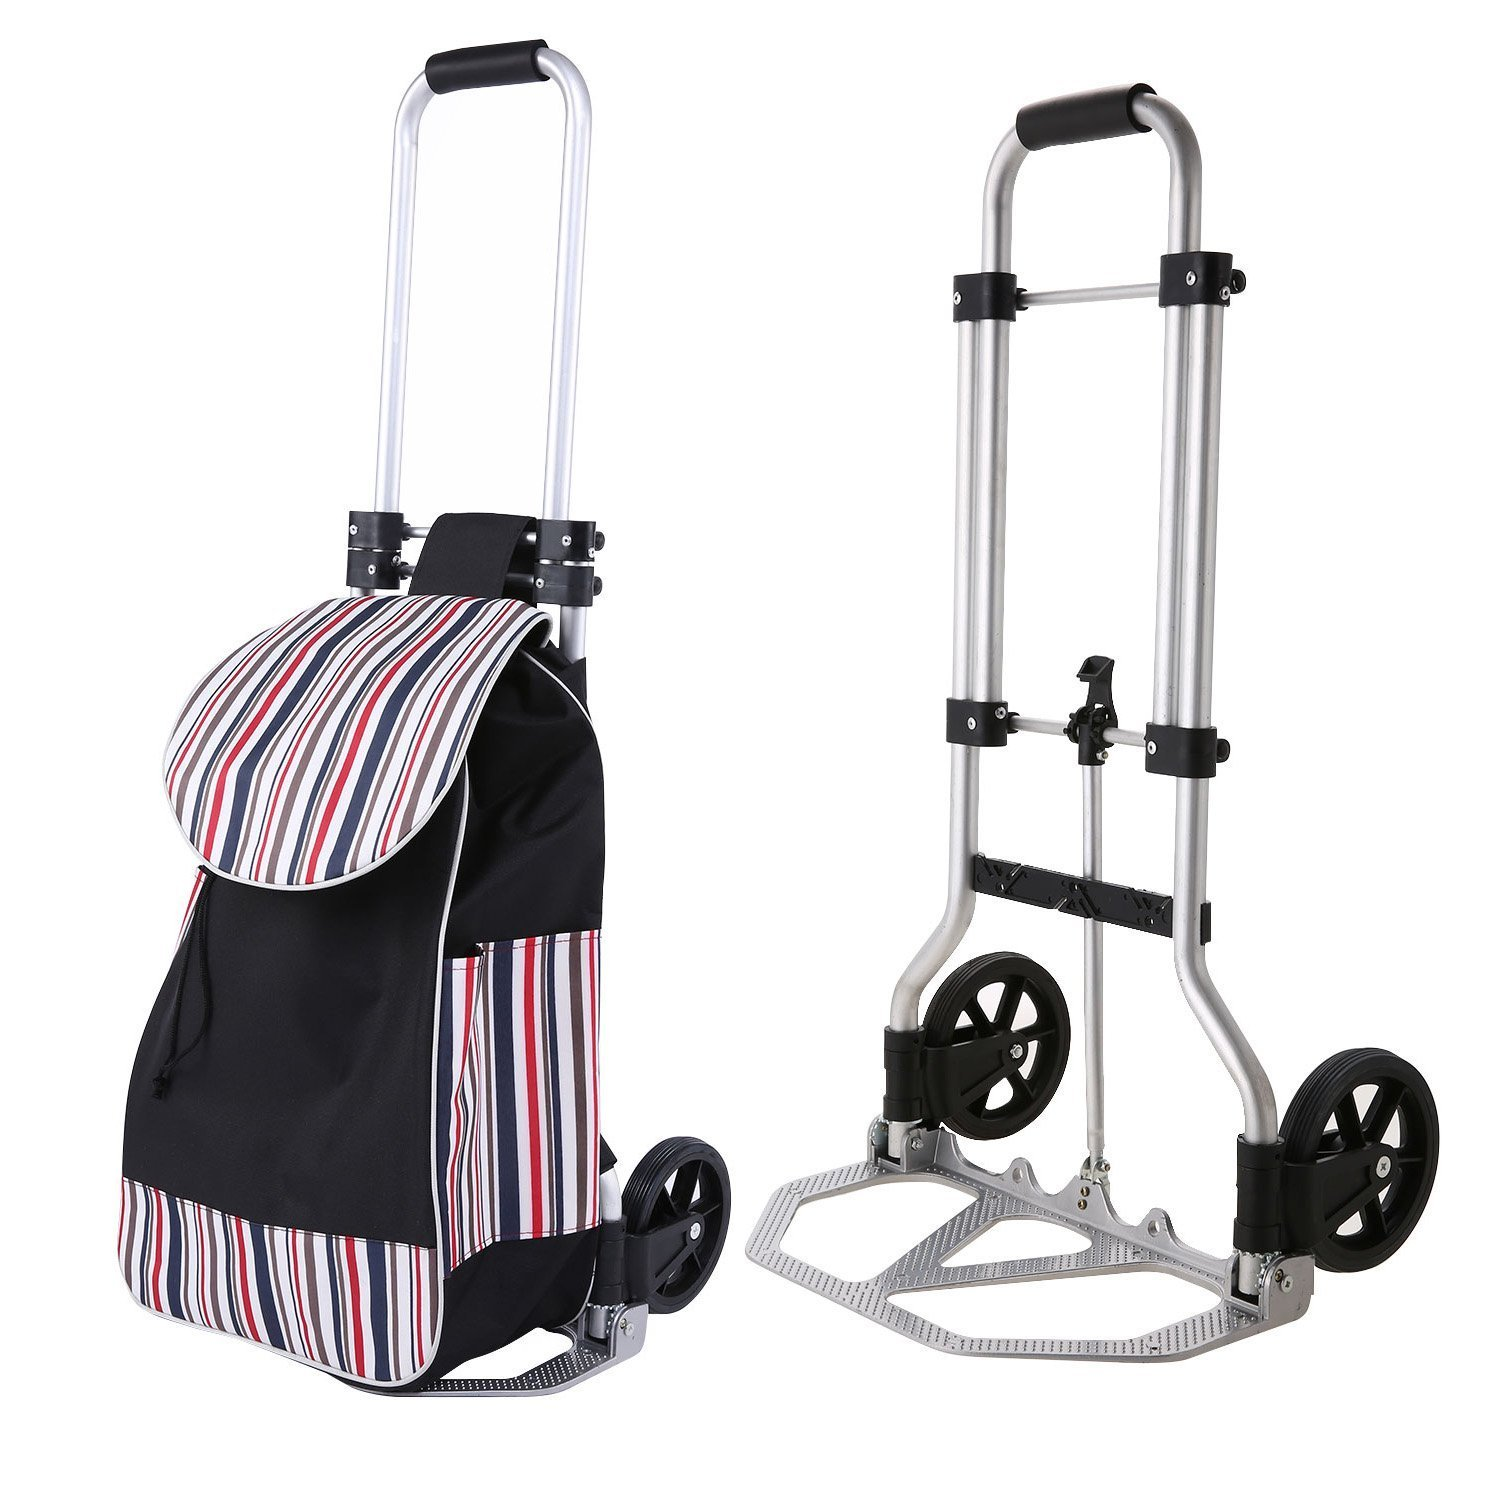 Moroly 2 in 1 Folding Shopping Cart 2-Wheeled Utility Trolley & Hand Truck Dolly for Grocery Laundry - Aluminum Frame Transport Up to 132lbs